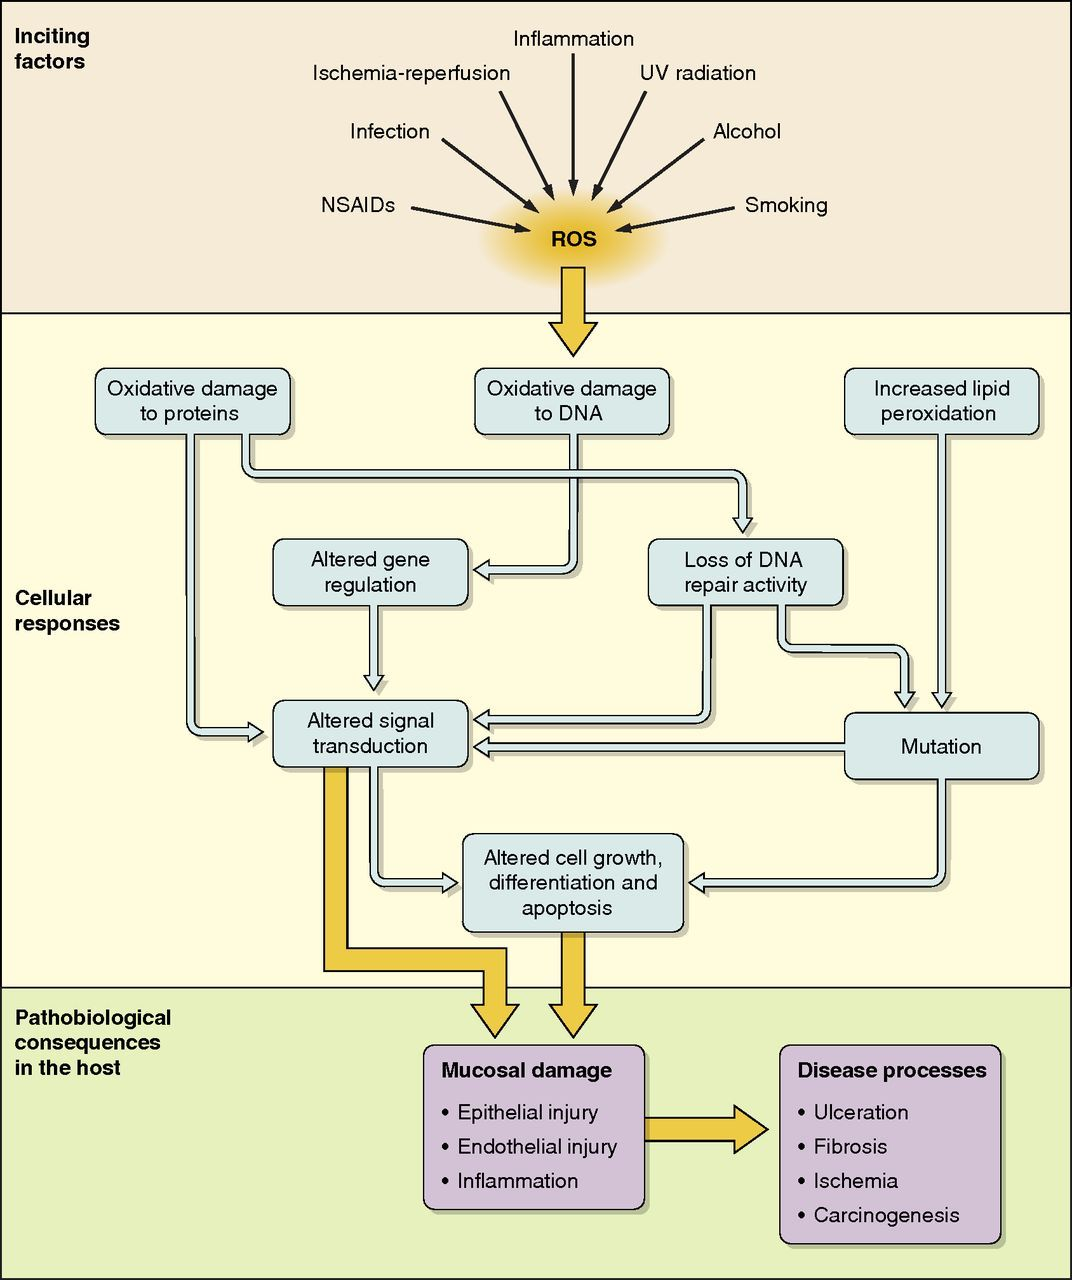 Pathophysiology Of Colon Cancer Diagram 2001 Bmw X5 Wiring Schematic Showing The Induction Oxidative